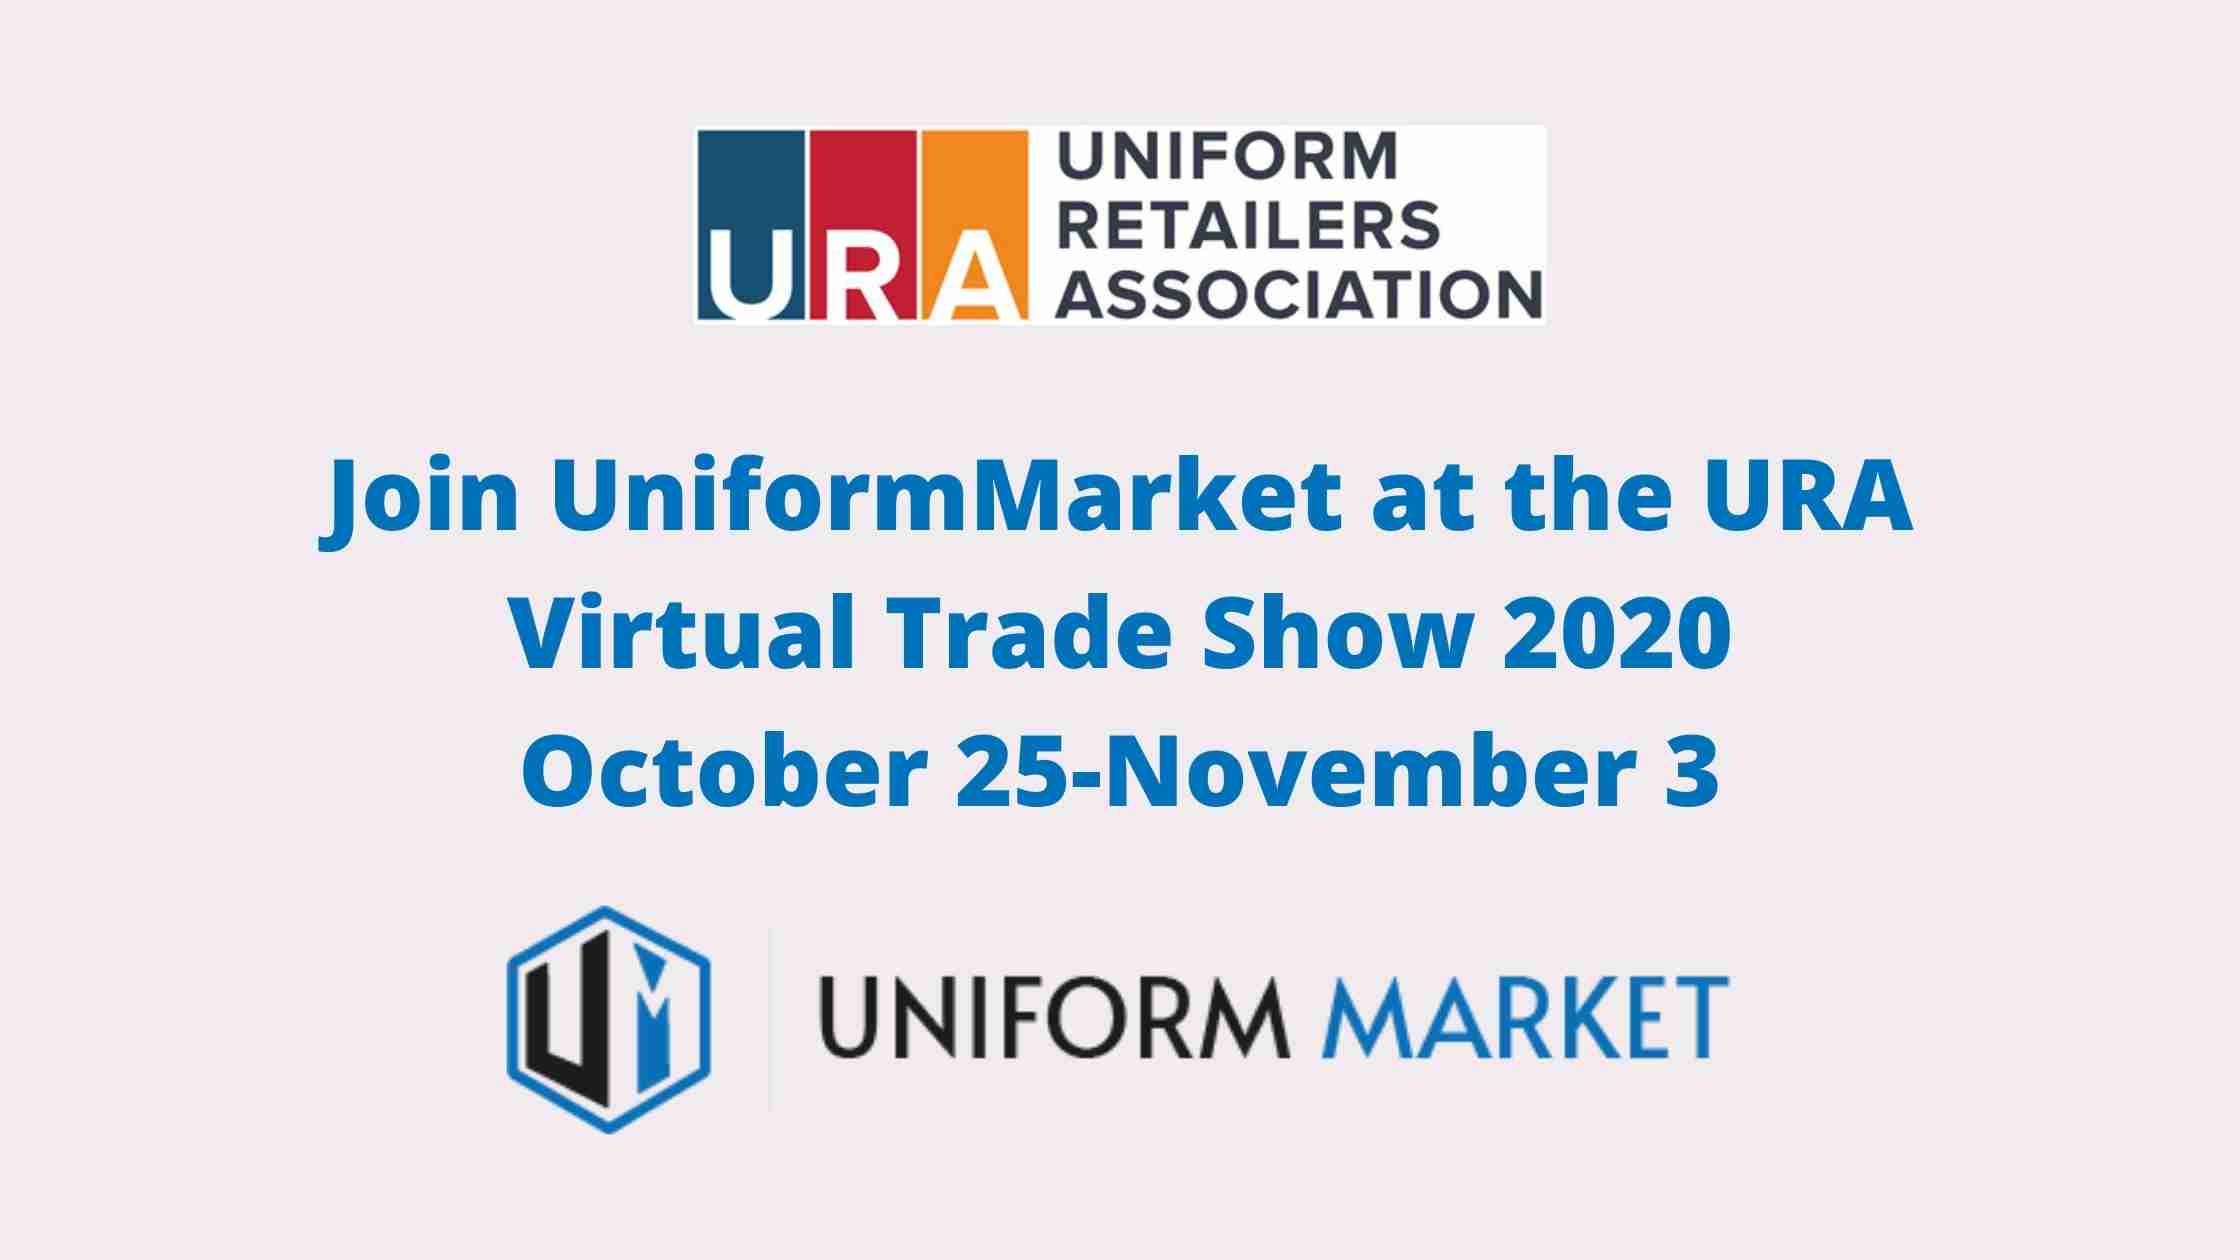 What to expect at the Uniform Retailers Association Trade Show 2020